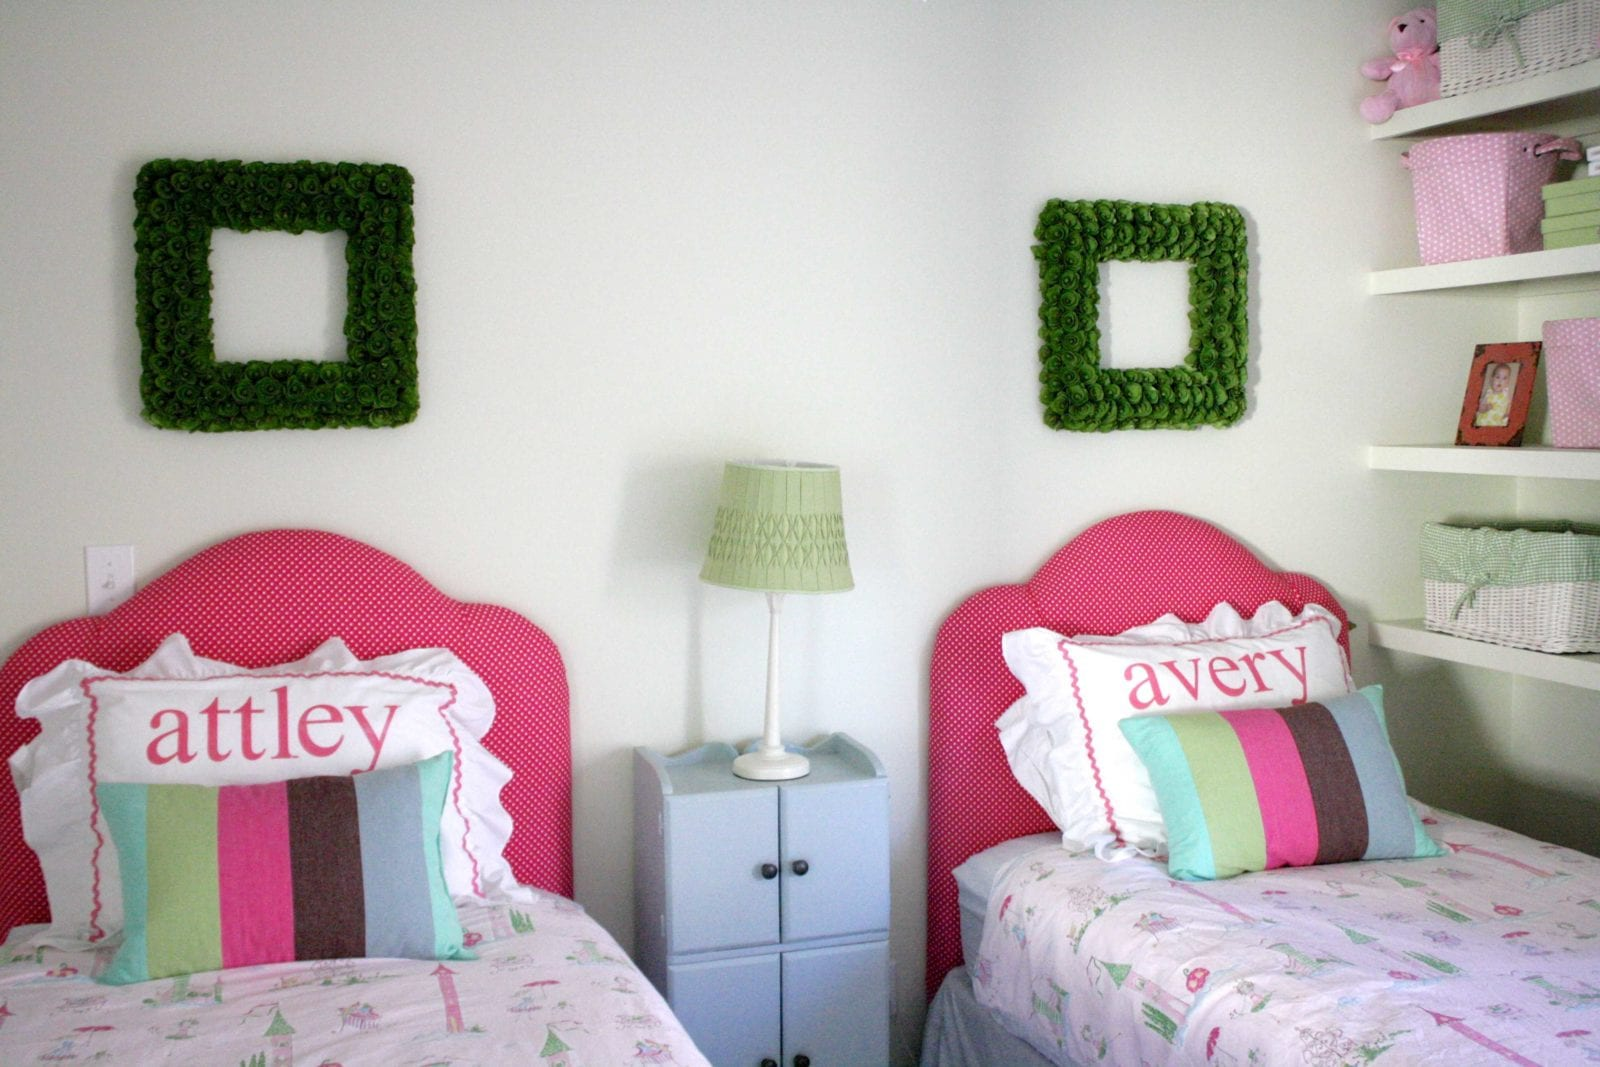 So Easy Come Learn How To Make An Upholstered Headboard With This Awesome Tutorial From